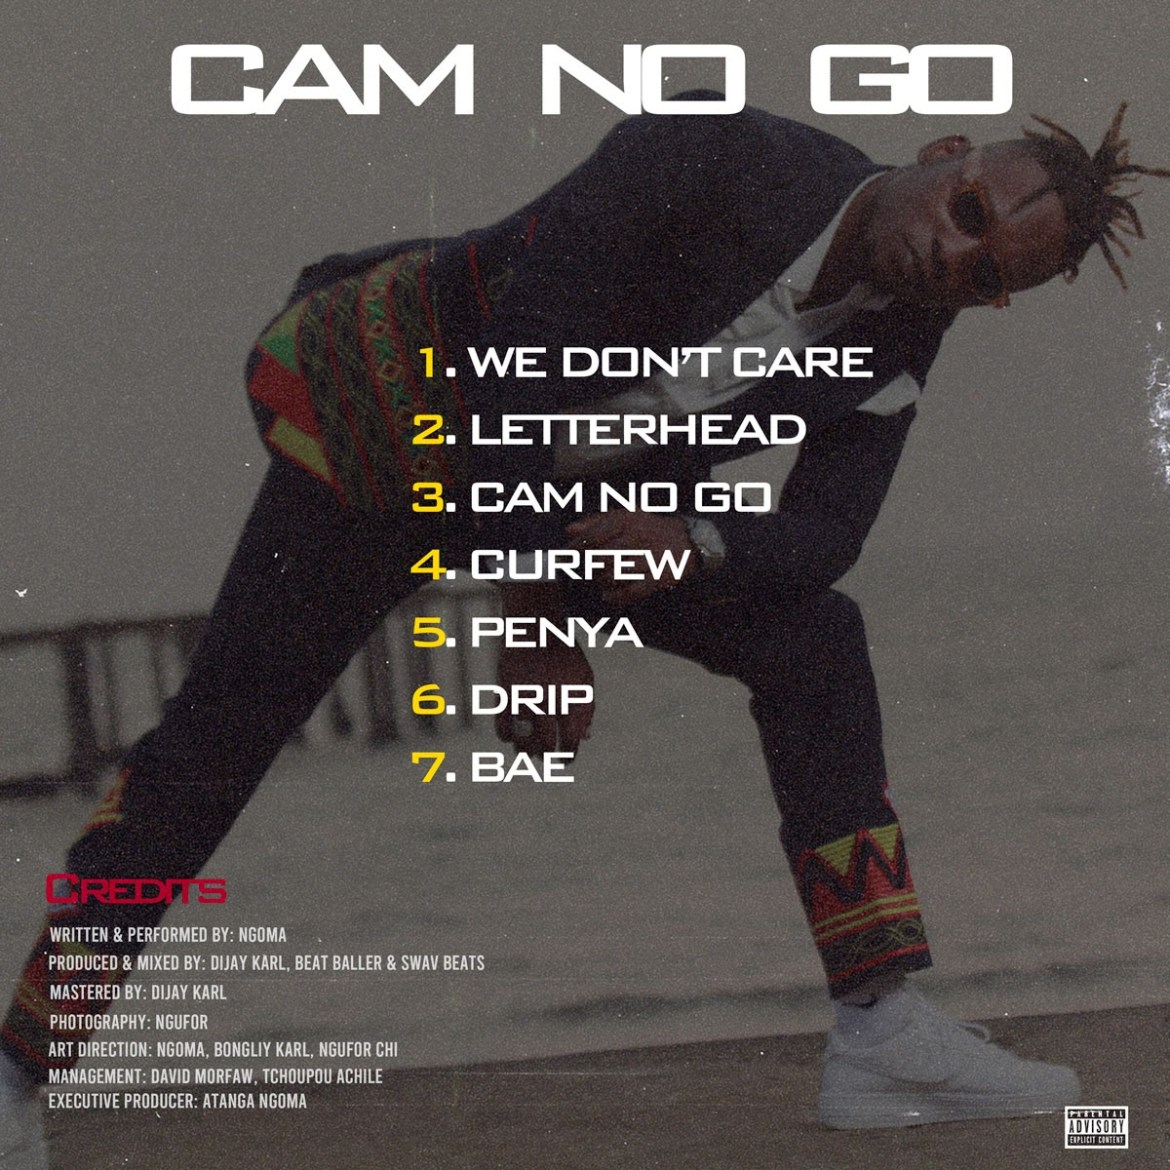 Ngoma Set To Release Forthcoming Cam & Go EP